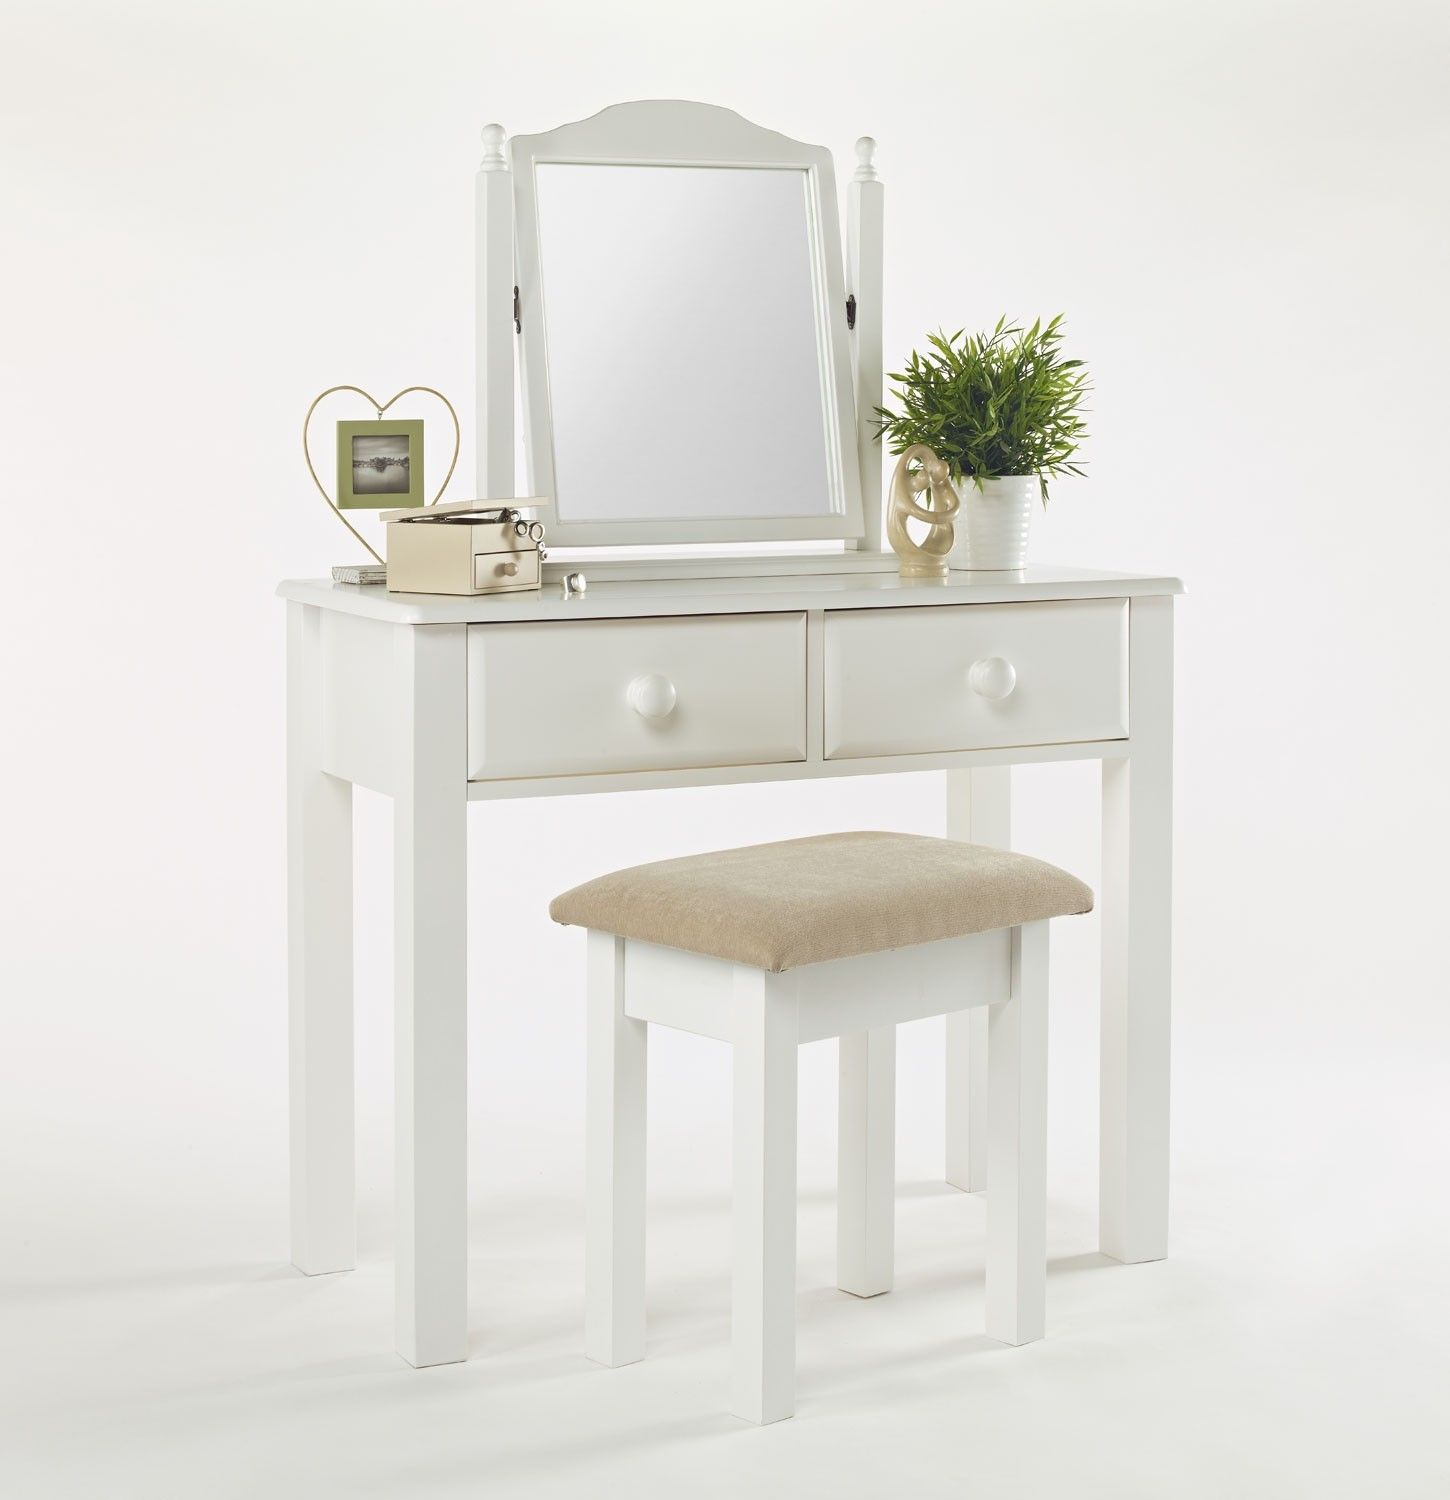 Modern dresser with mirror and chair - Explore Dressing Table Mirror Dressing Tables And More